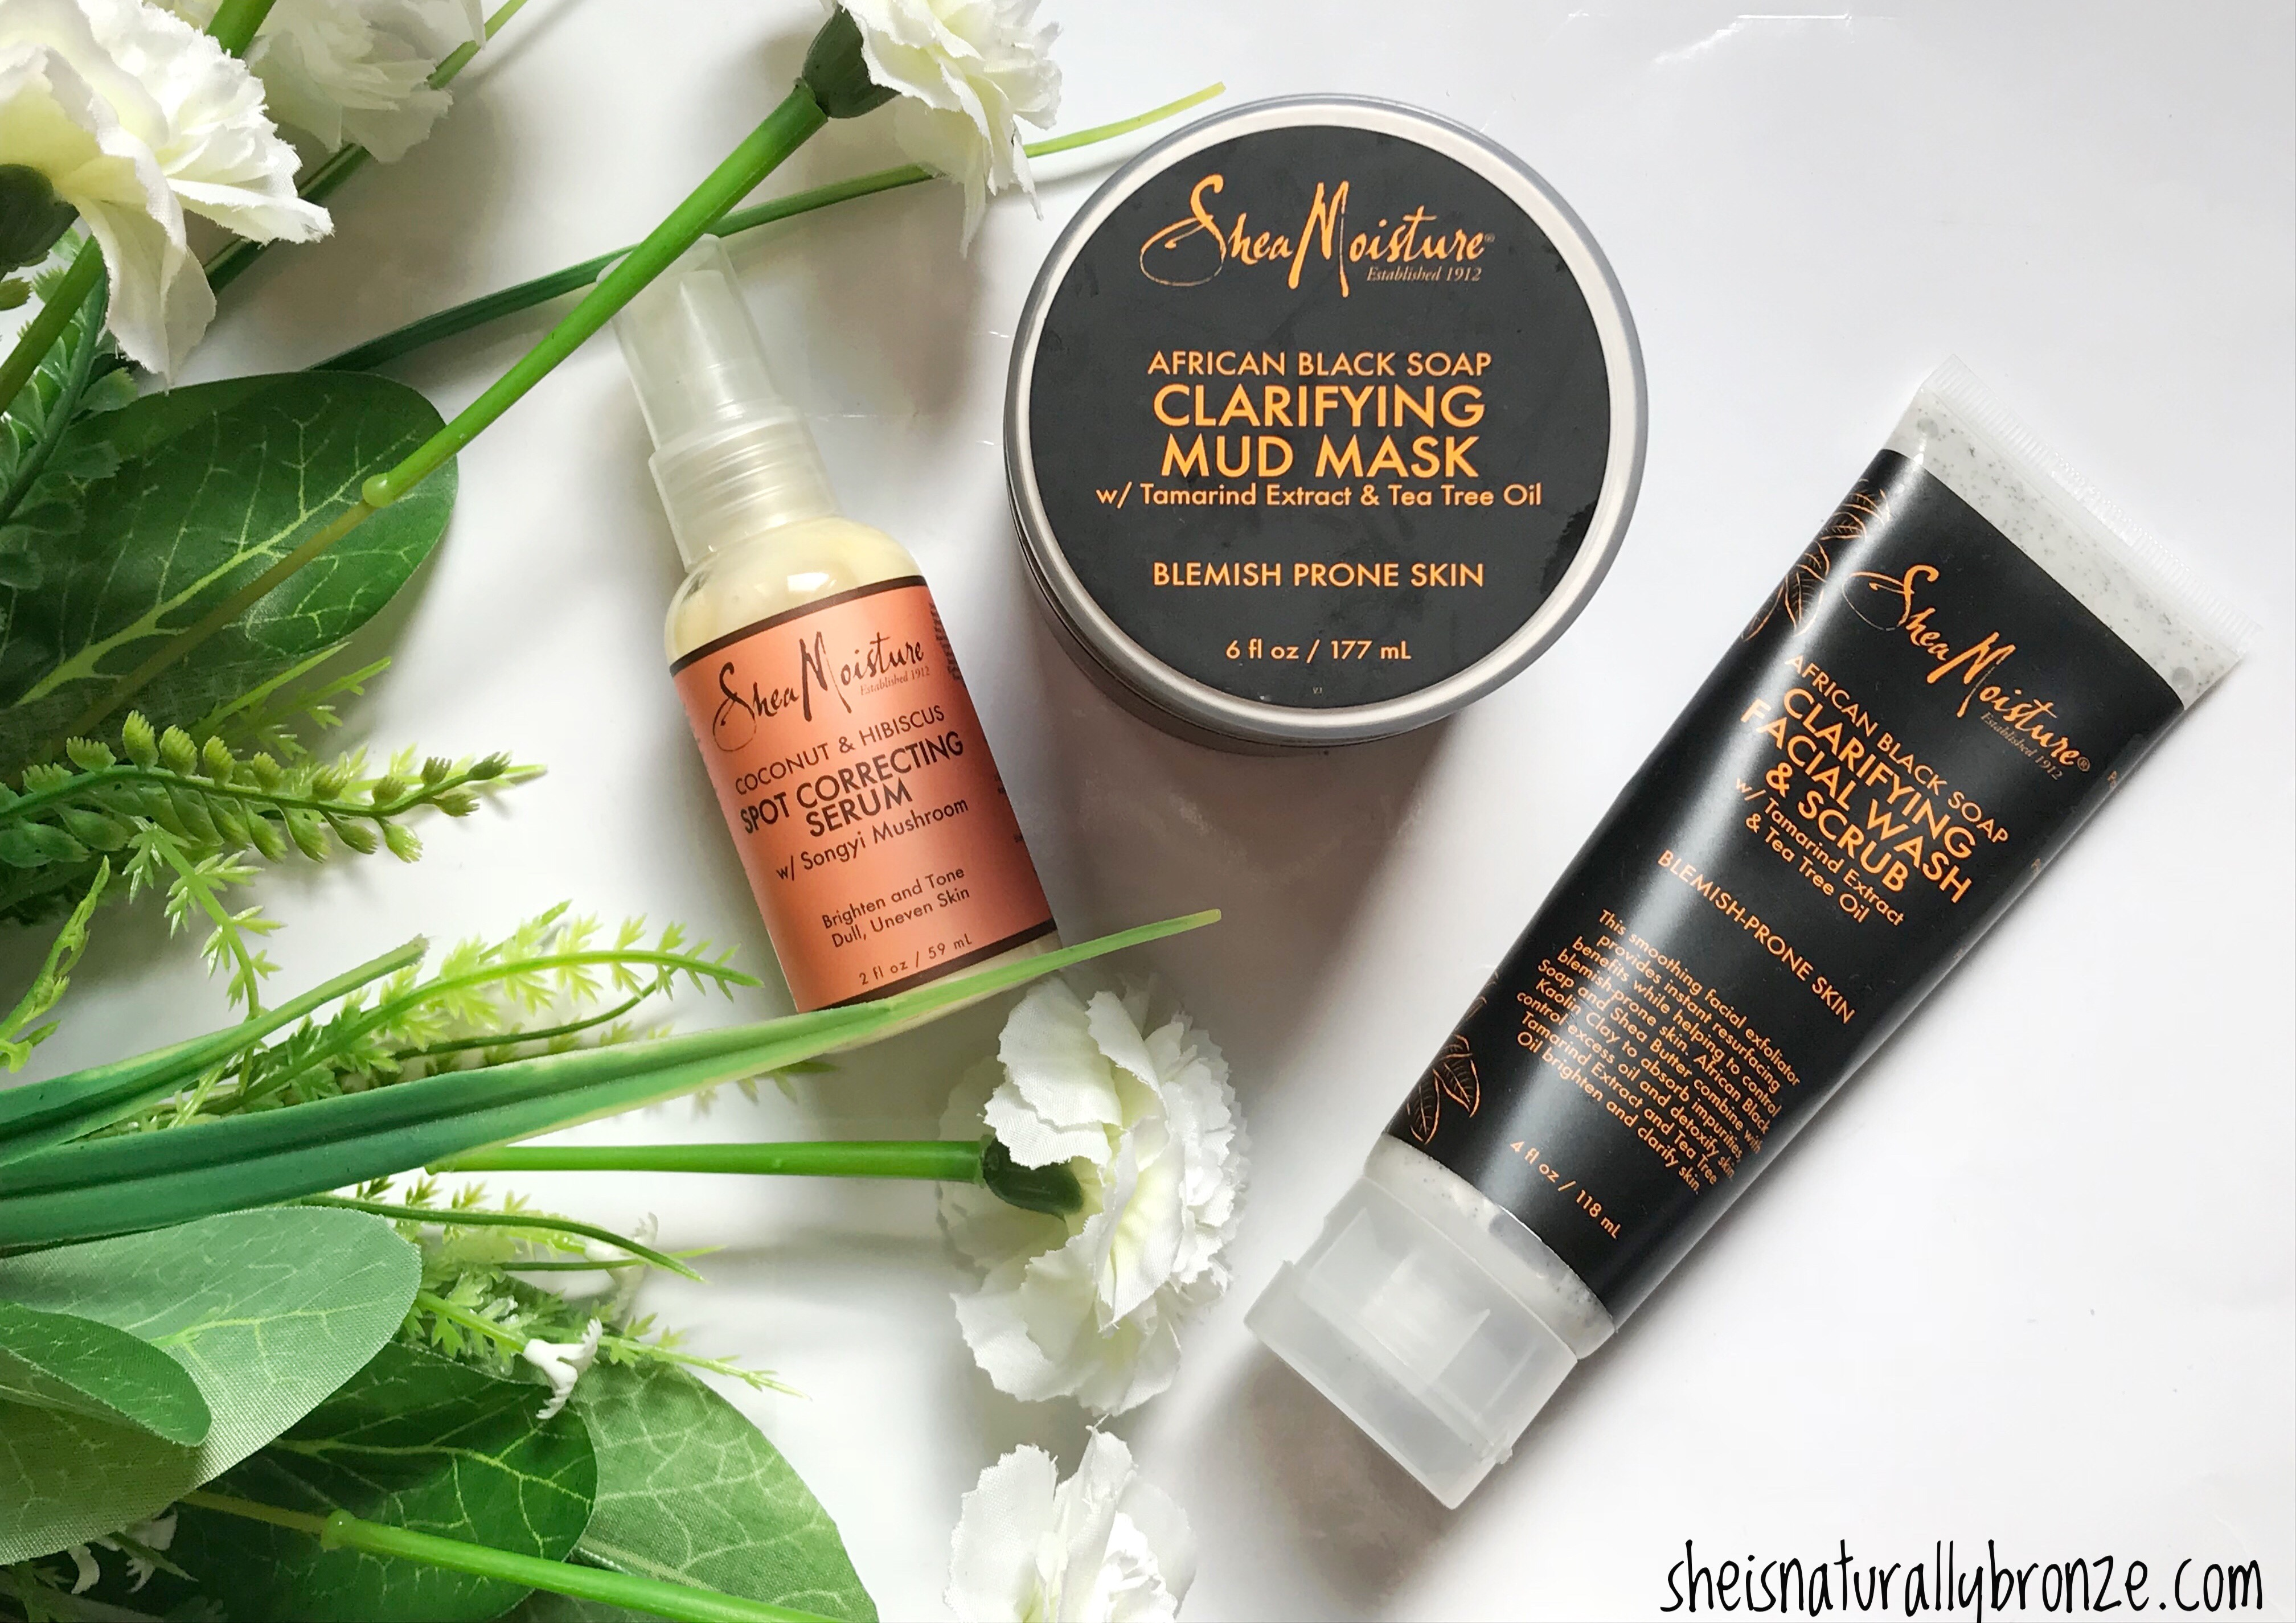 How I'm getting calmer, more supple skin | Shea moisture Skincare